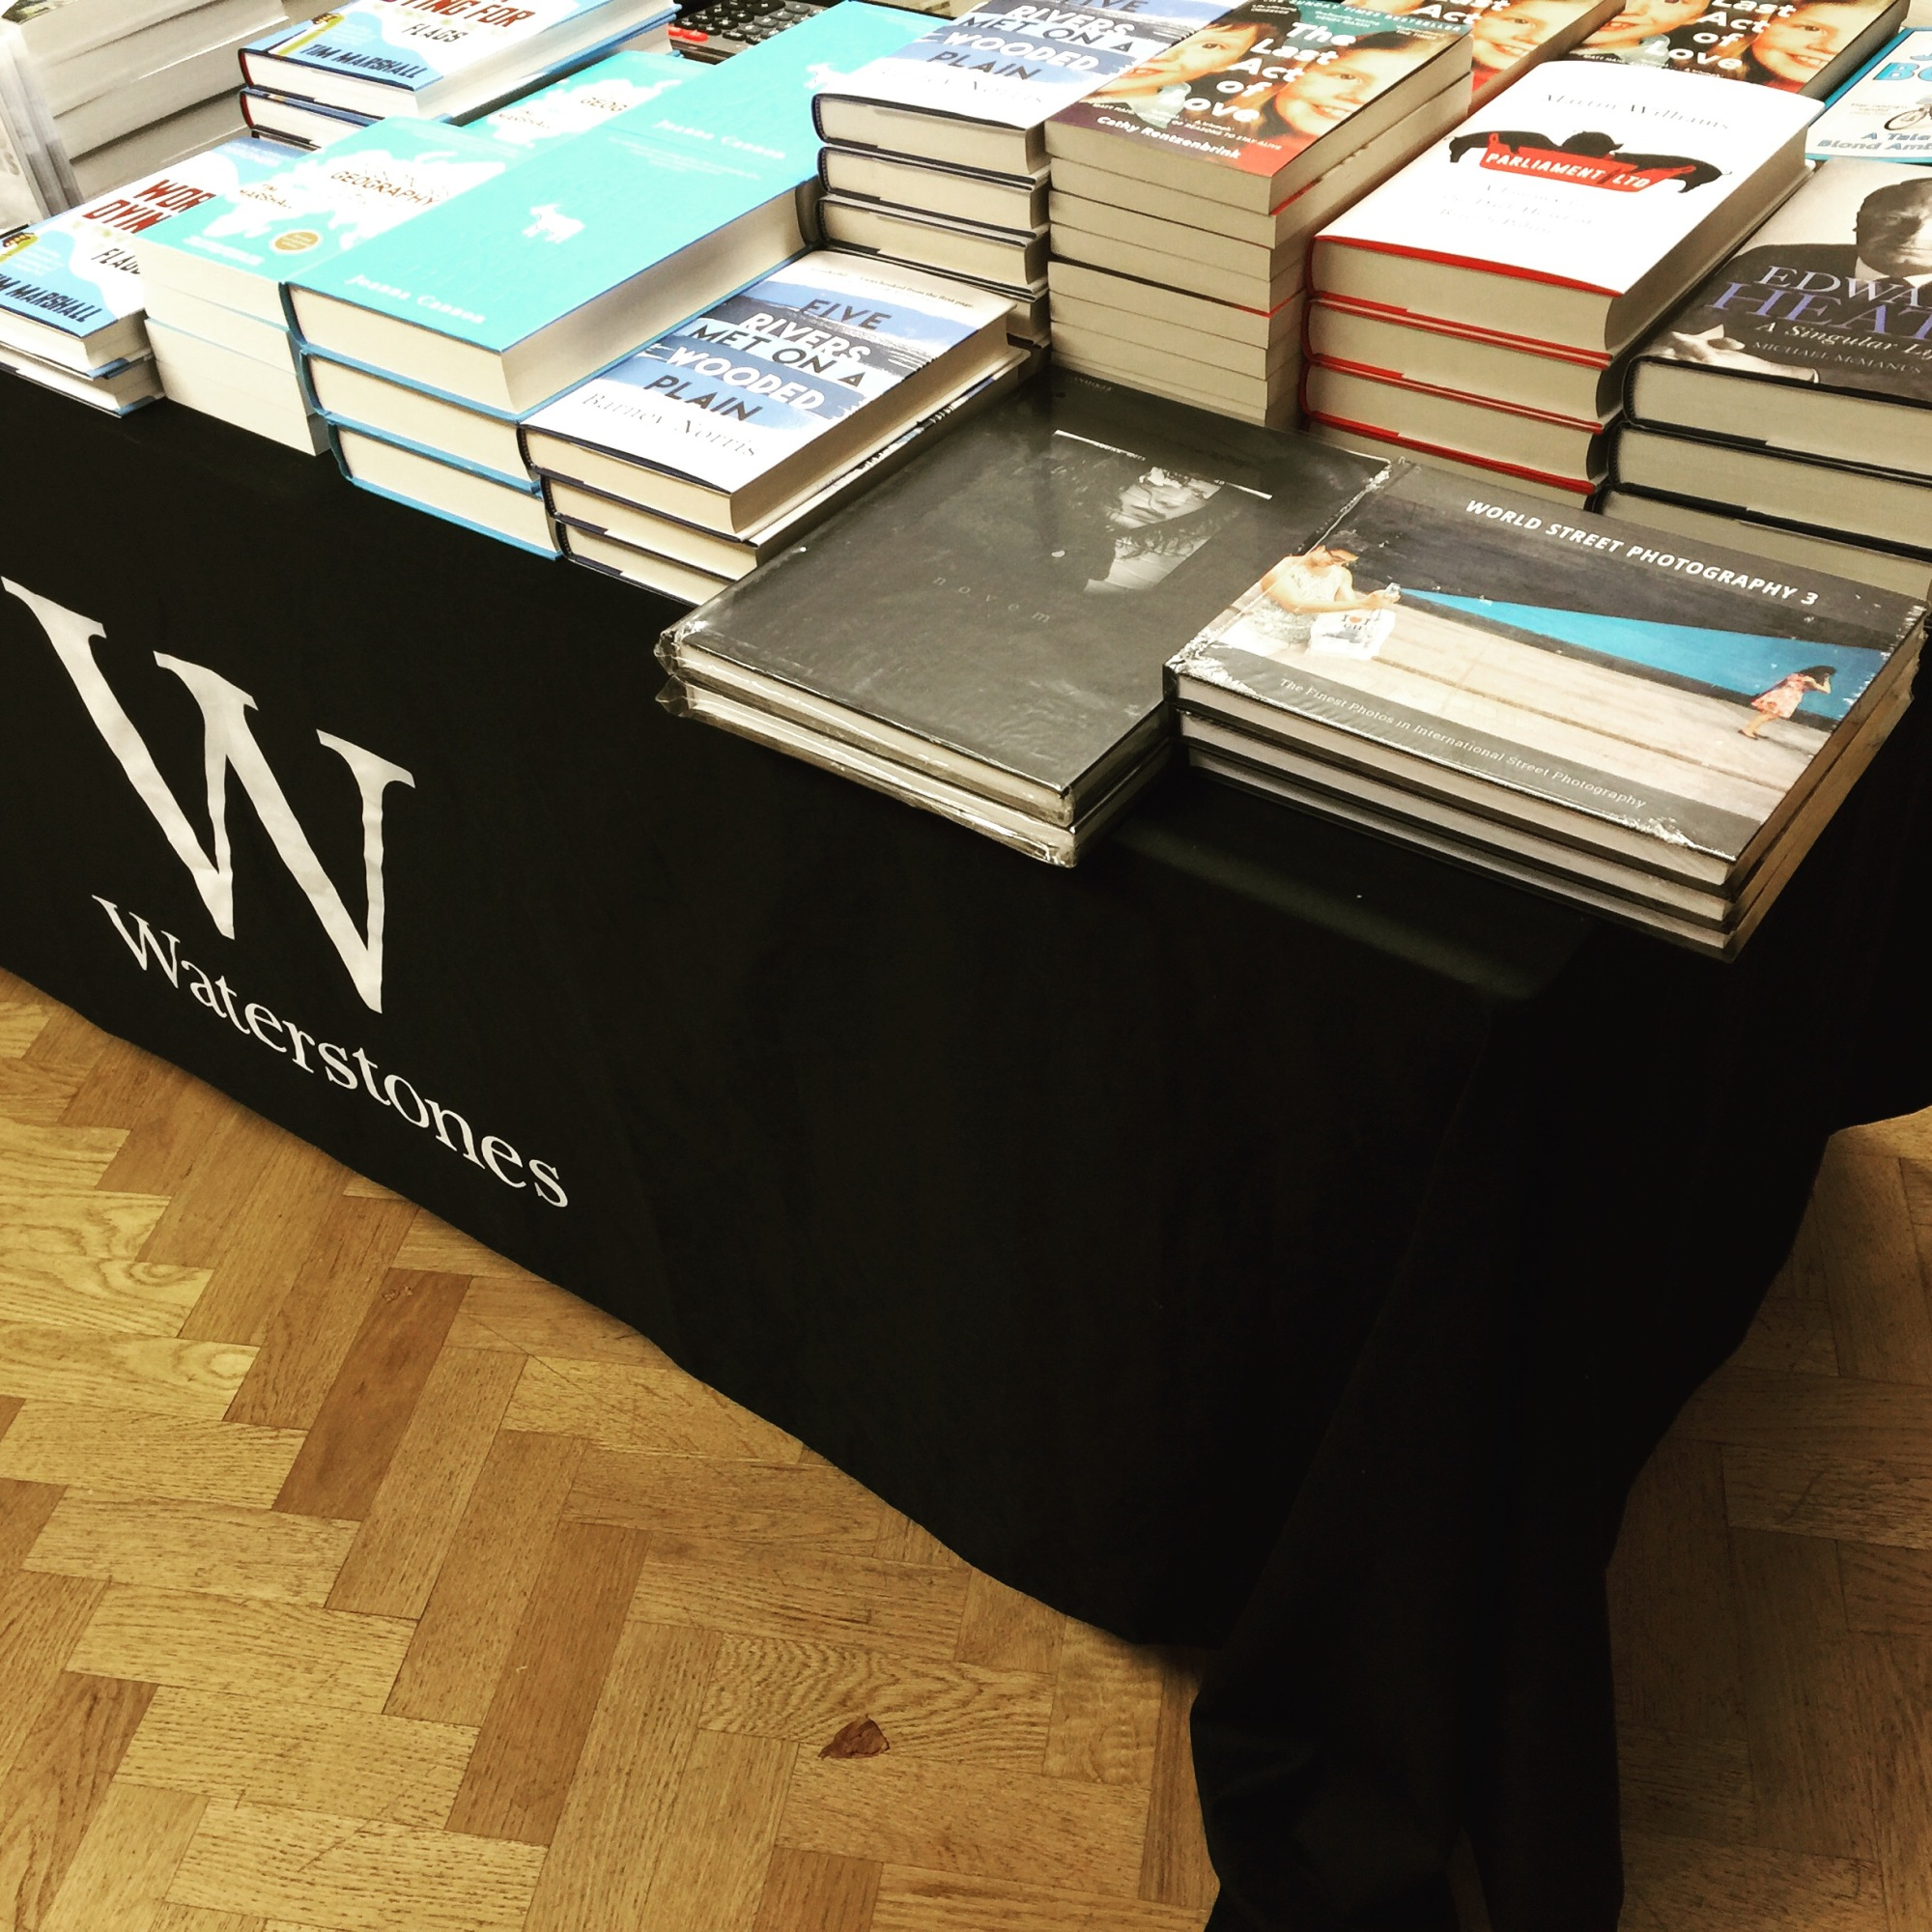 Stocked and sold at Waterstones bookstore London